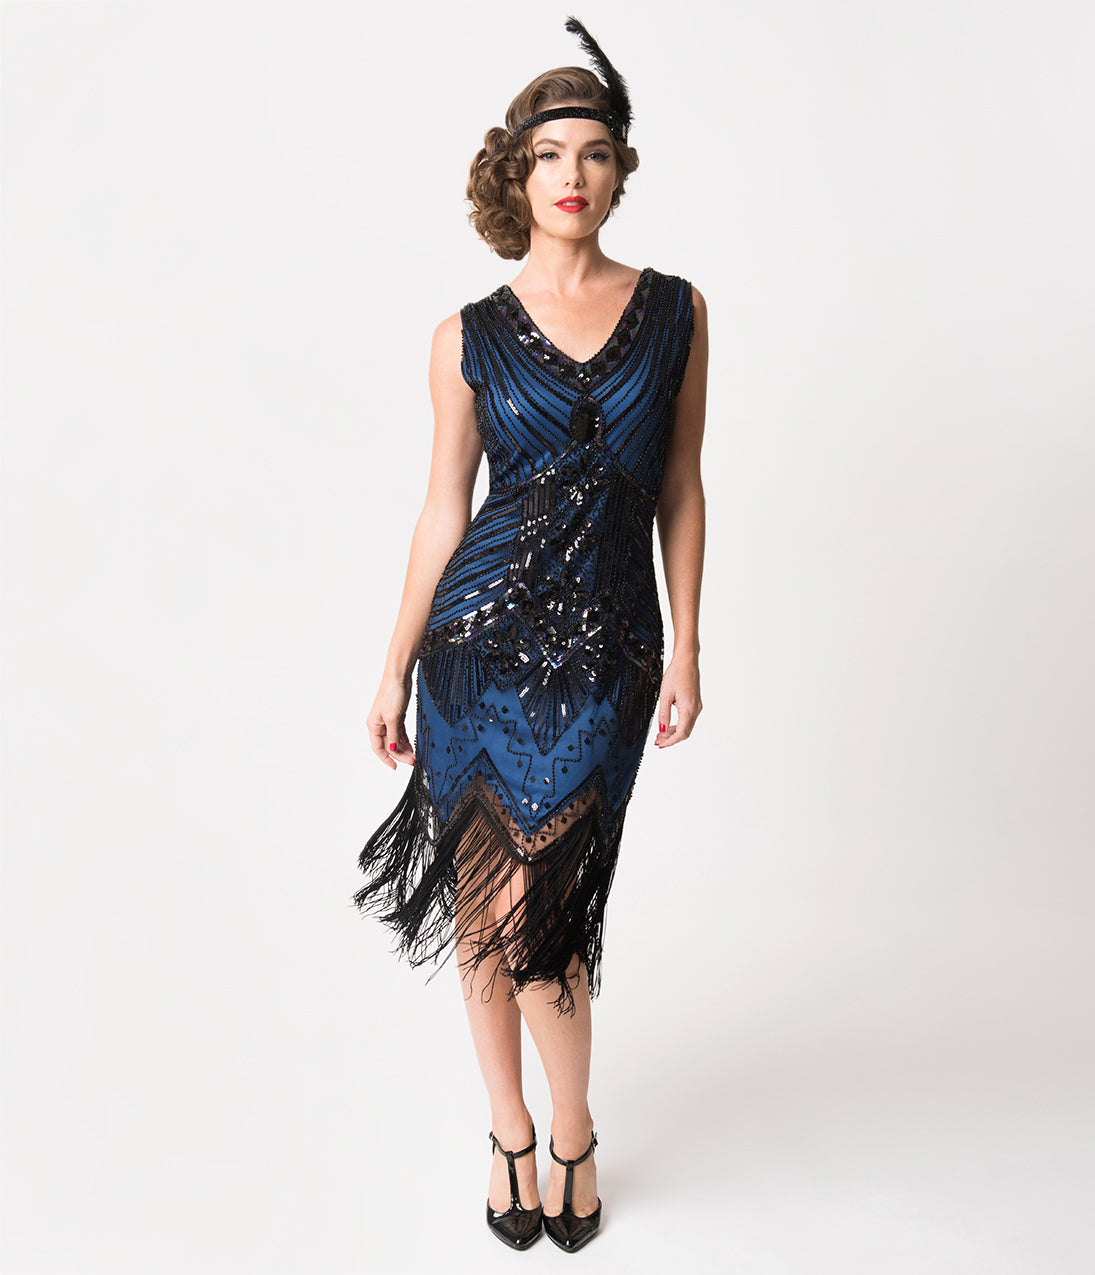 39eefaae92f Flapper Dresses   Quality Flapper Costumes Unique Vintage 1920S Deco Navy  Blue Black Sequin Veronique Fringe